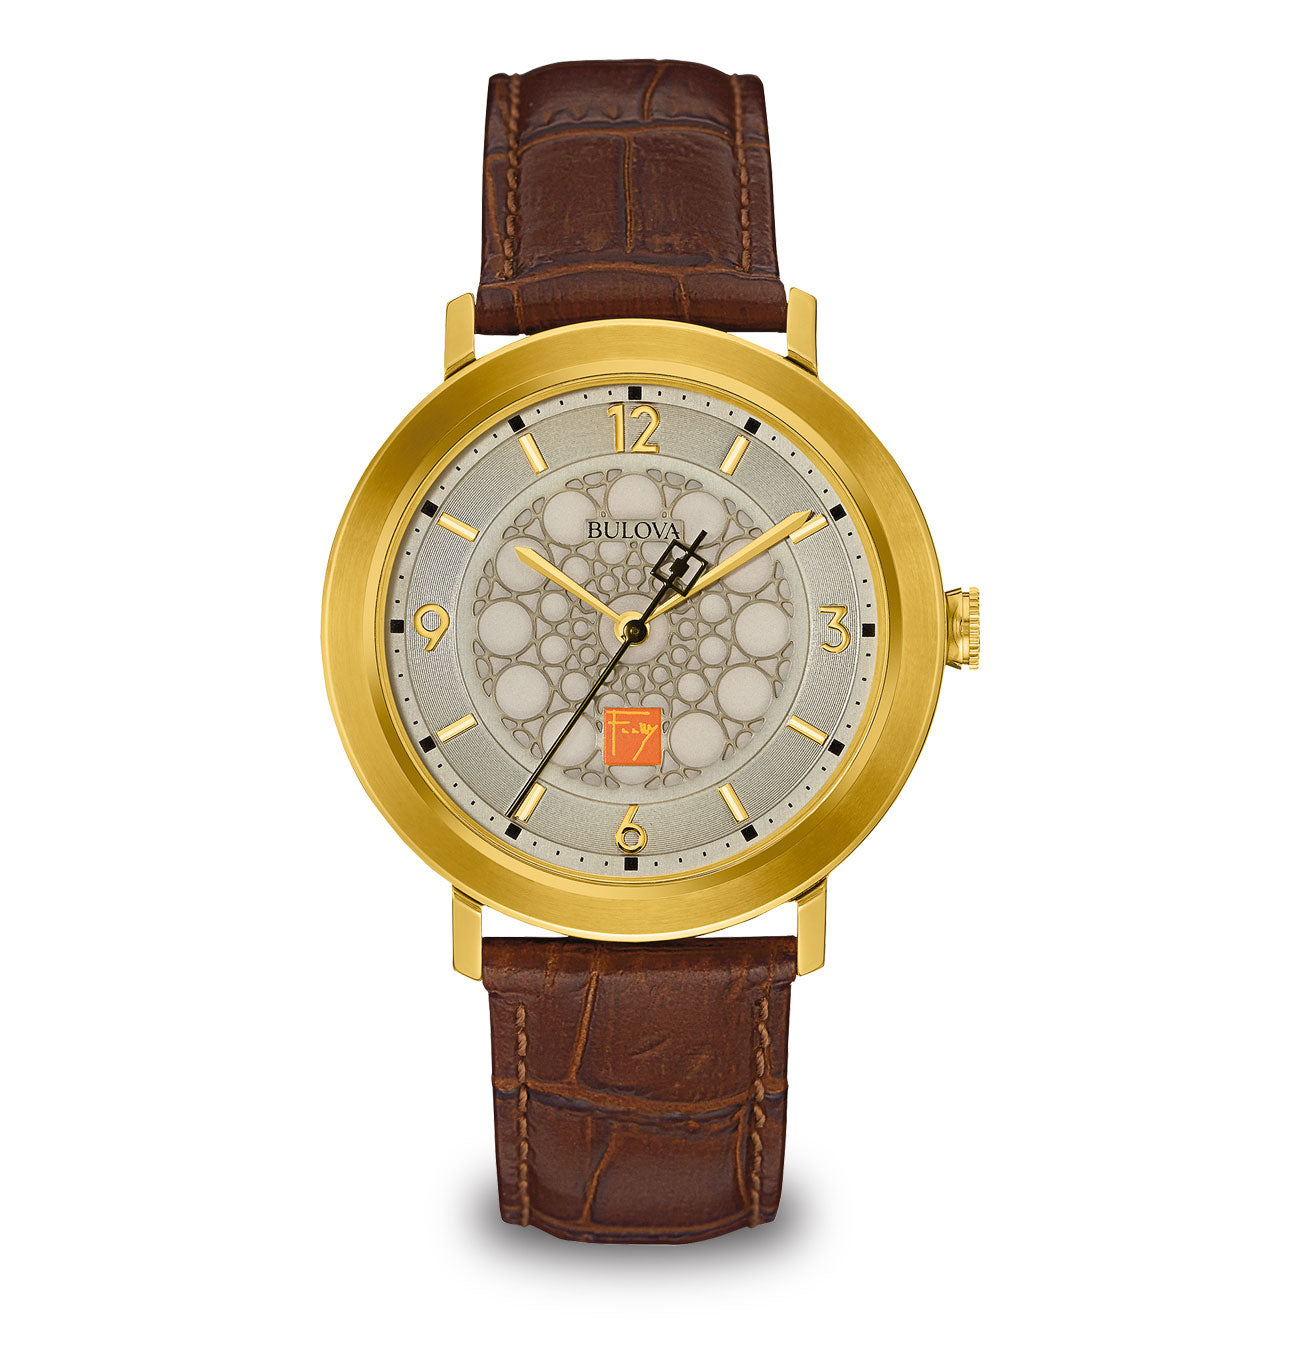 Bulova Frank Lloyd Wright Men's Watch - 97A117